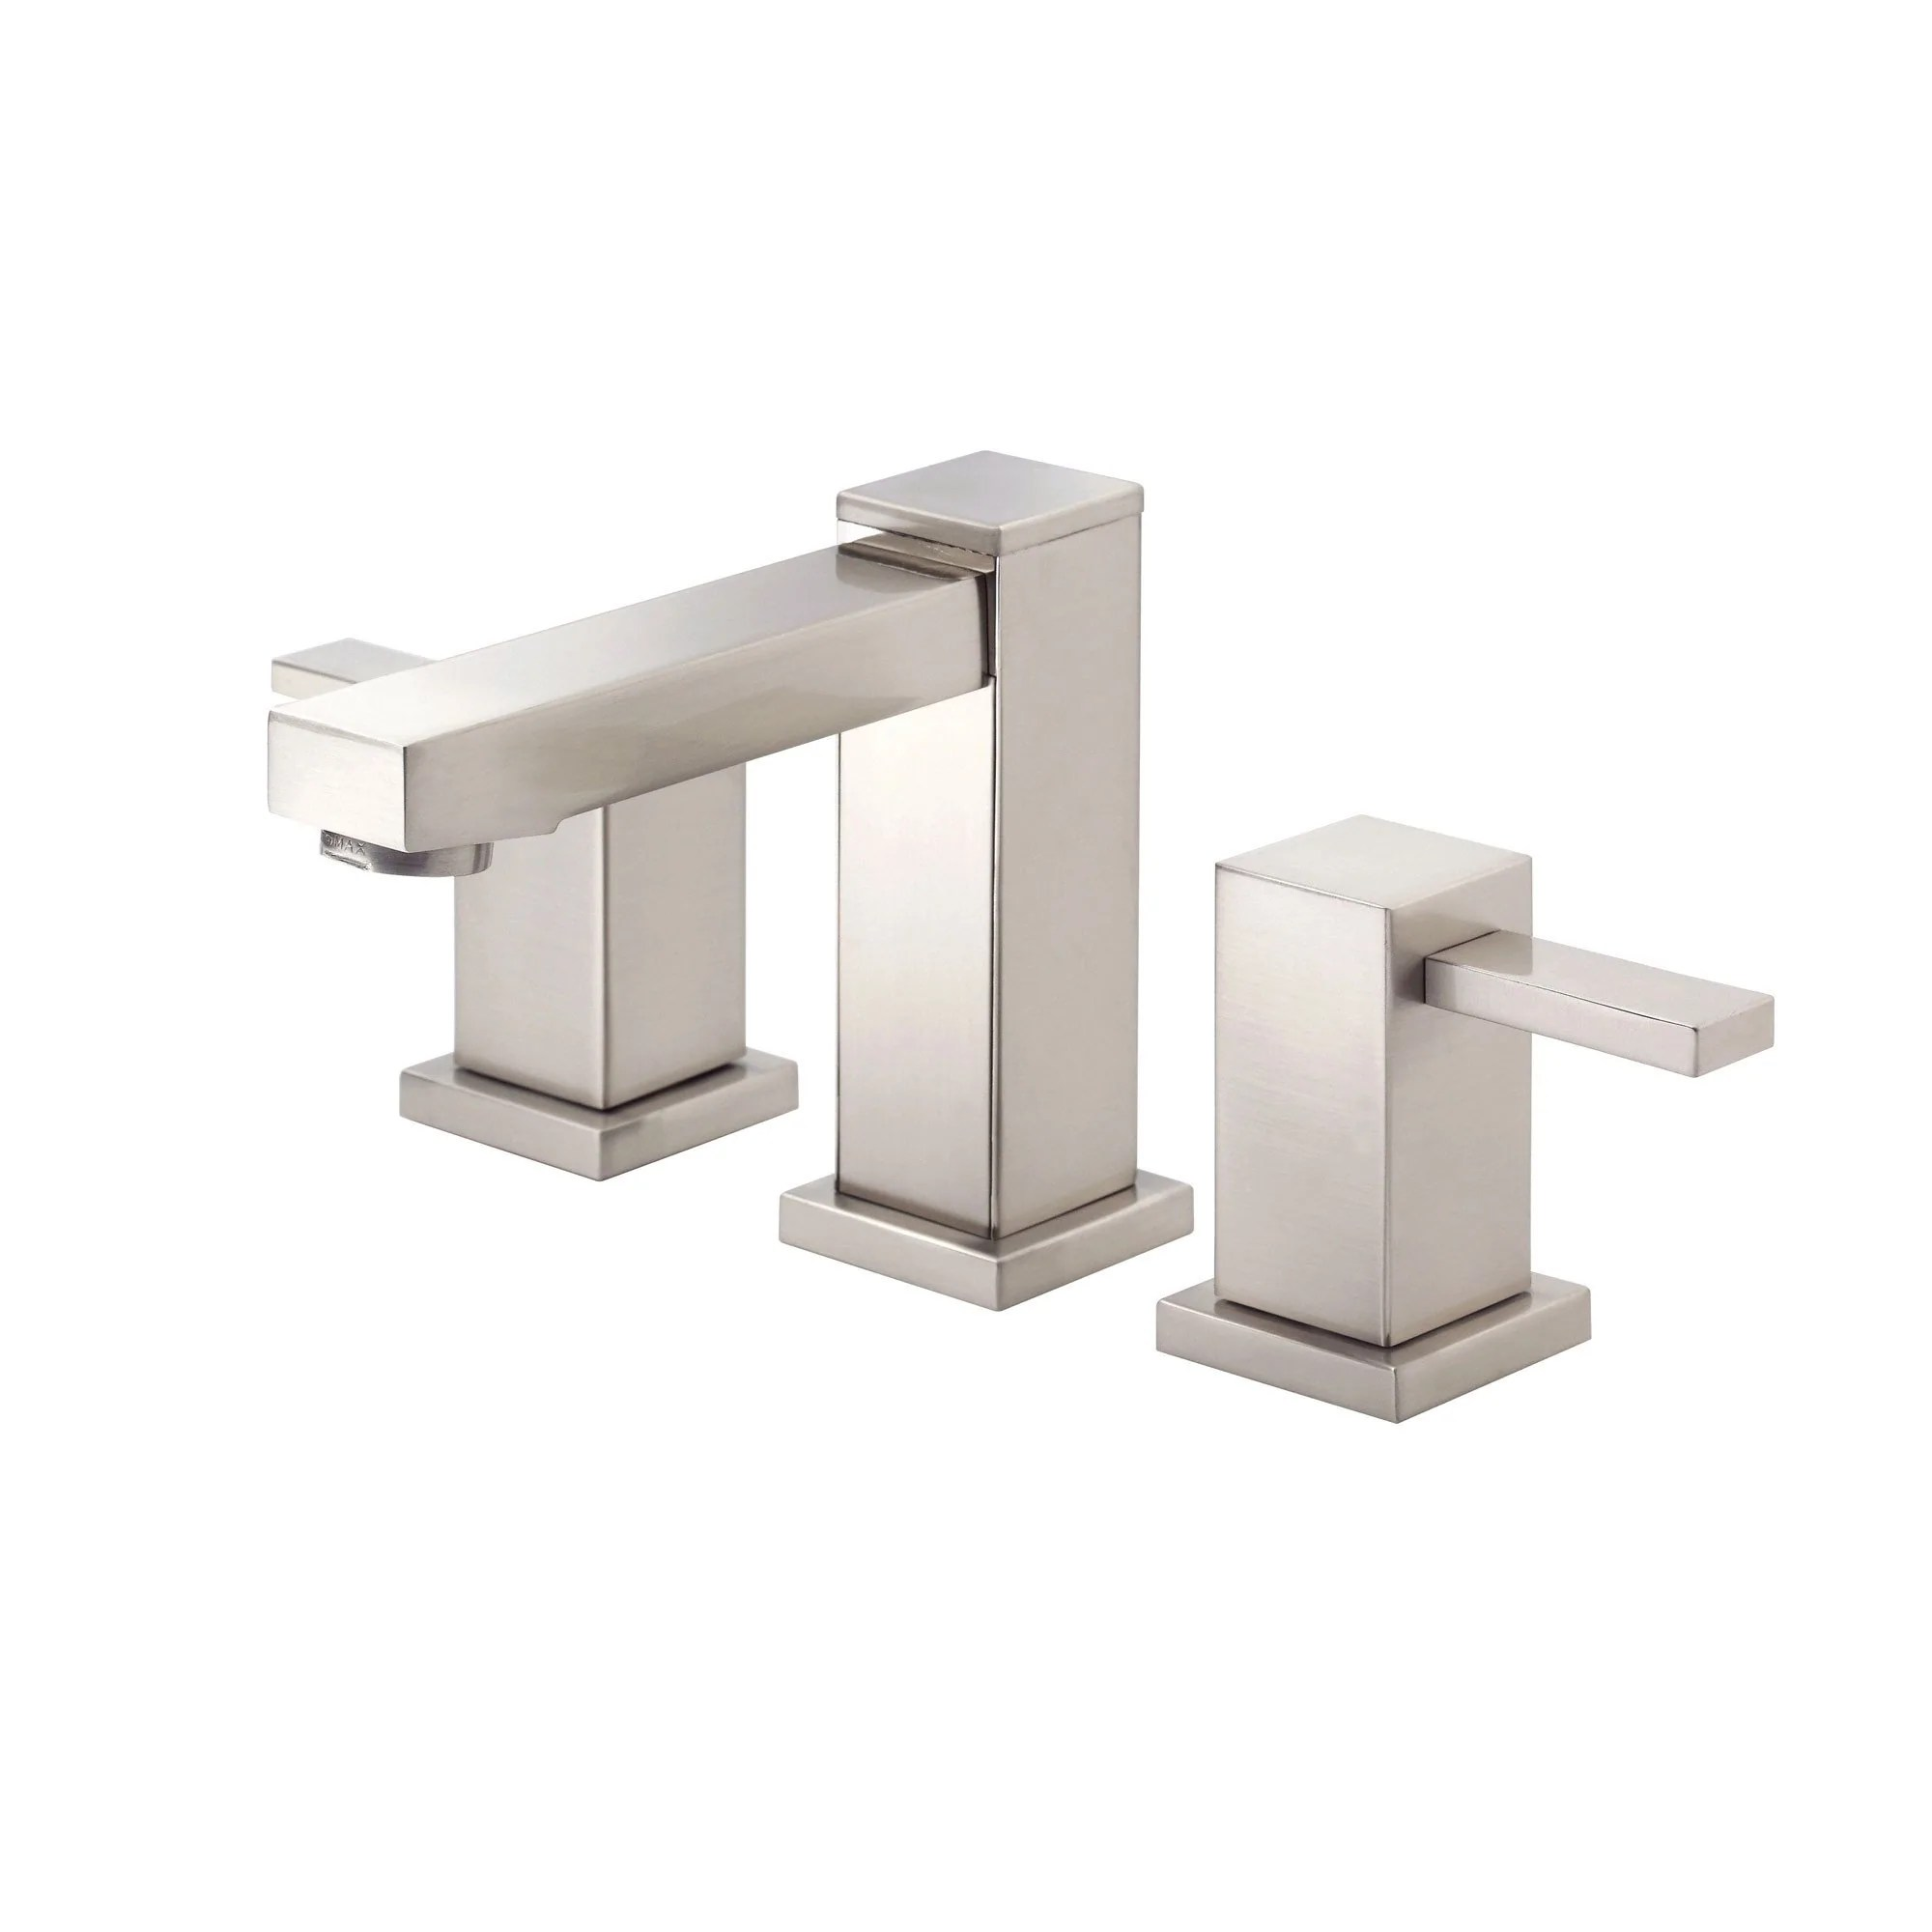 Danze Reef Brushed Nickel Modern Square 2 Handle Widespread Bathroom Sink Faucet danze kitchen faucets Danze Reef Brushed Nickel Modern Square 2 Handle Widespread Bathroom Sink Faucet